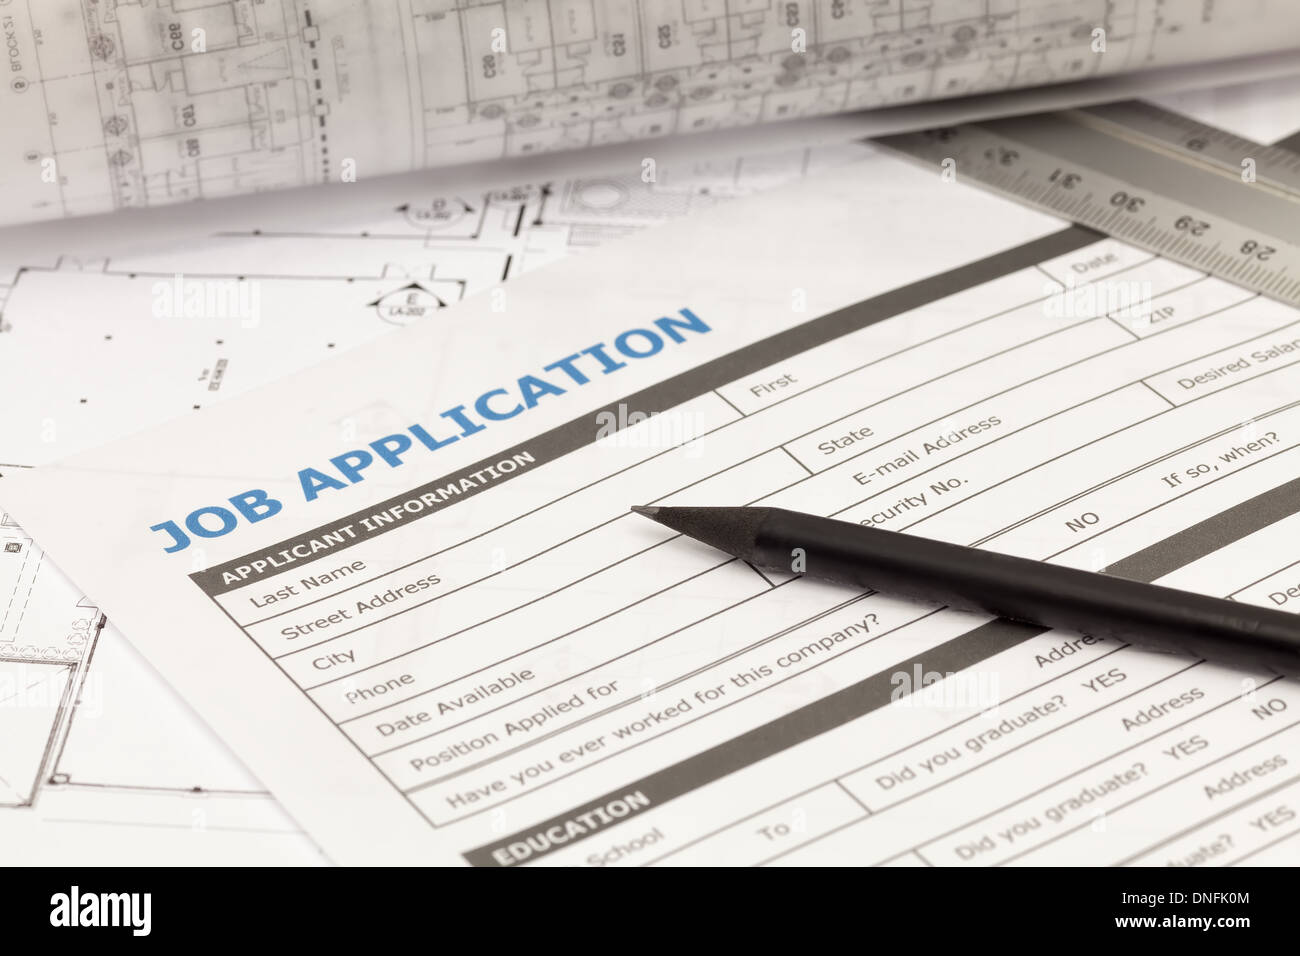 Job application form on architectural plan - Stock Image